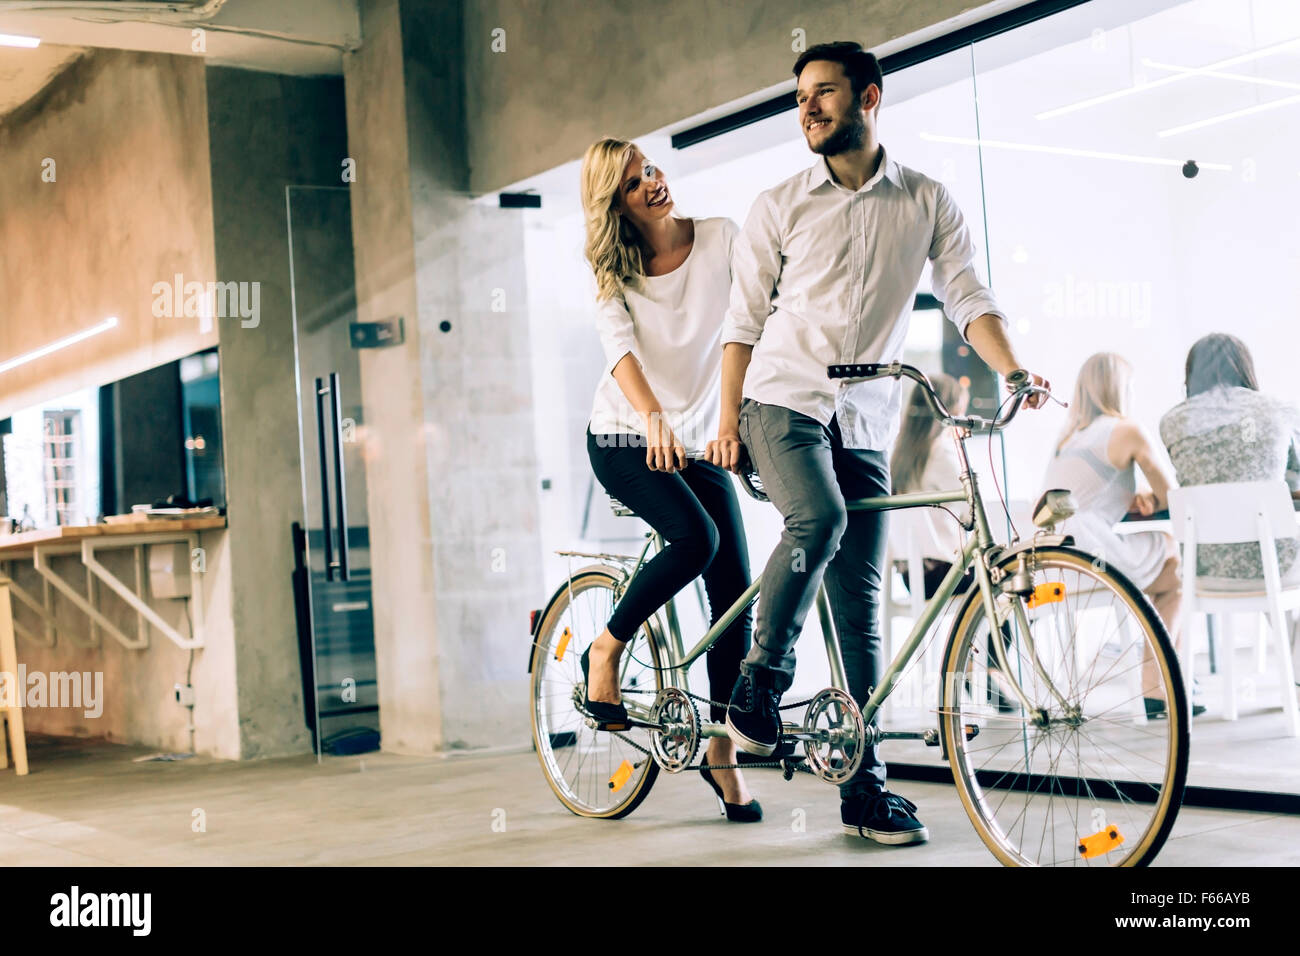 Business people on twin bicycle with mutual goals and same vision in business - Stock Image